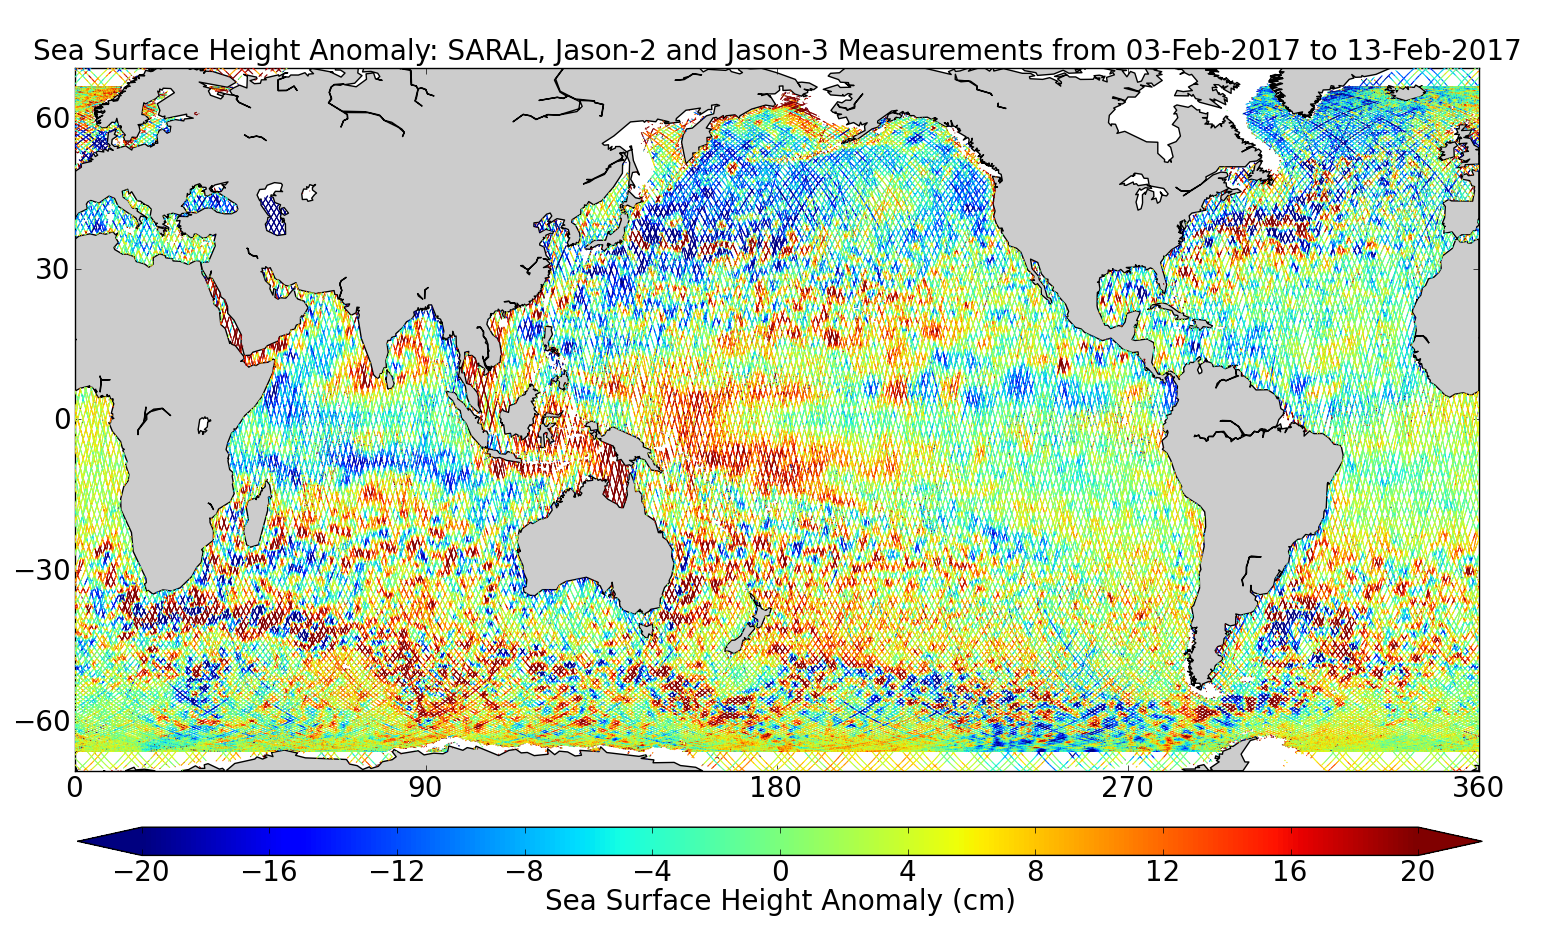 Sea Surface Height Anomaly: SARAL, Jason-2 and Jason-3 Measurements from 03-Feb-2017 to 13-Feb-2017